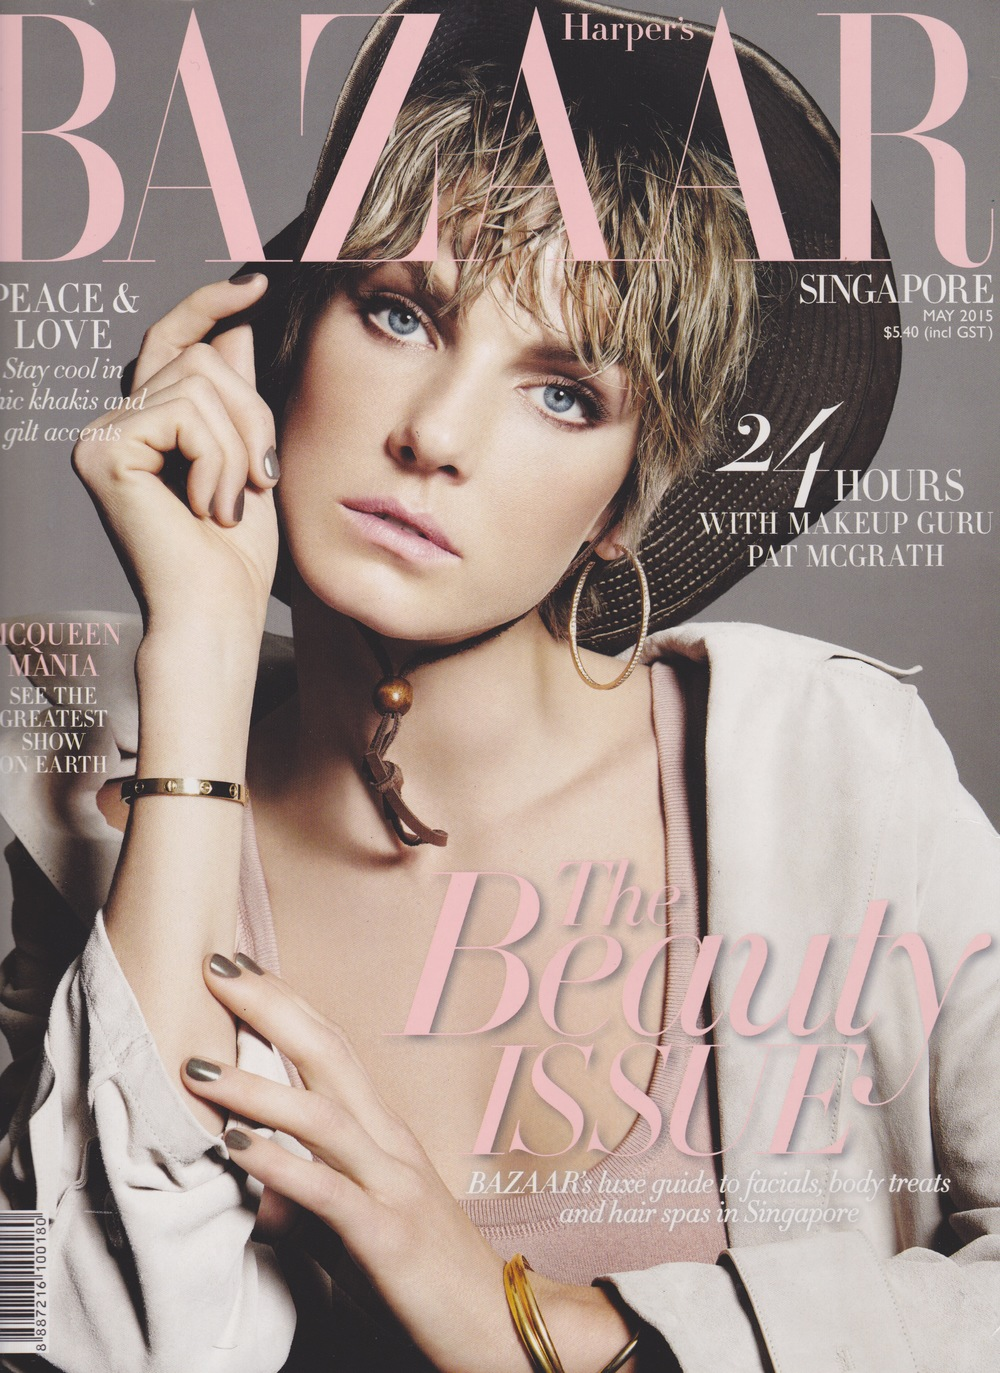 Harpers Bazaar Singapore May15 1.jpeg